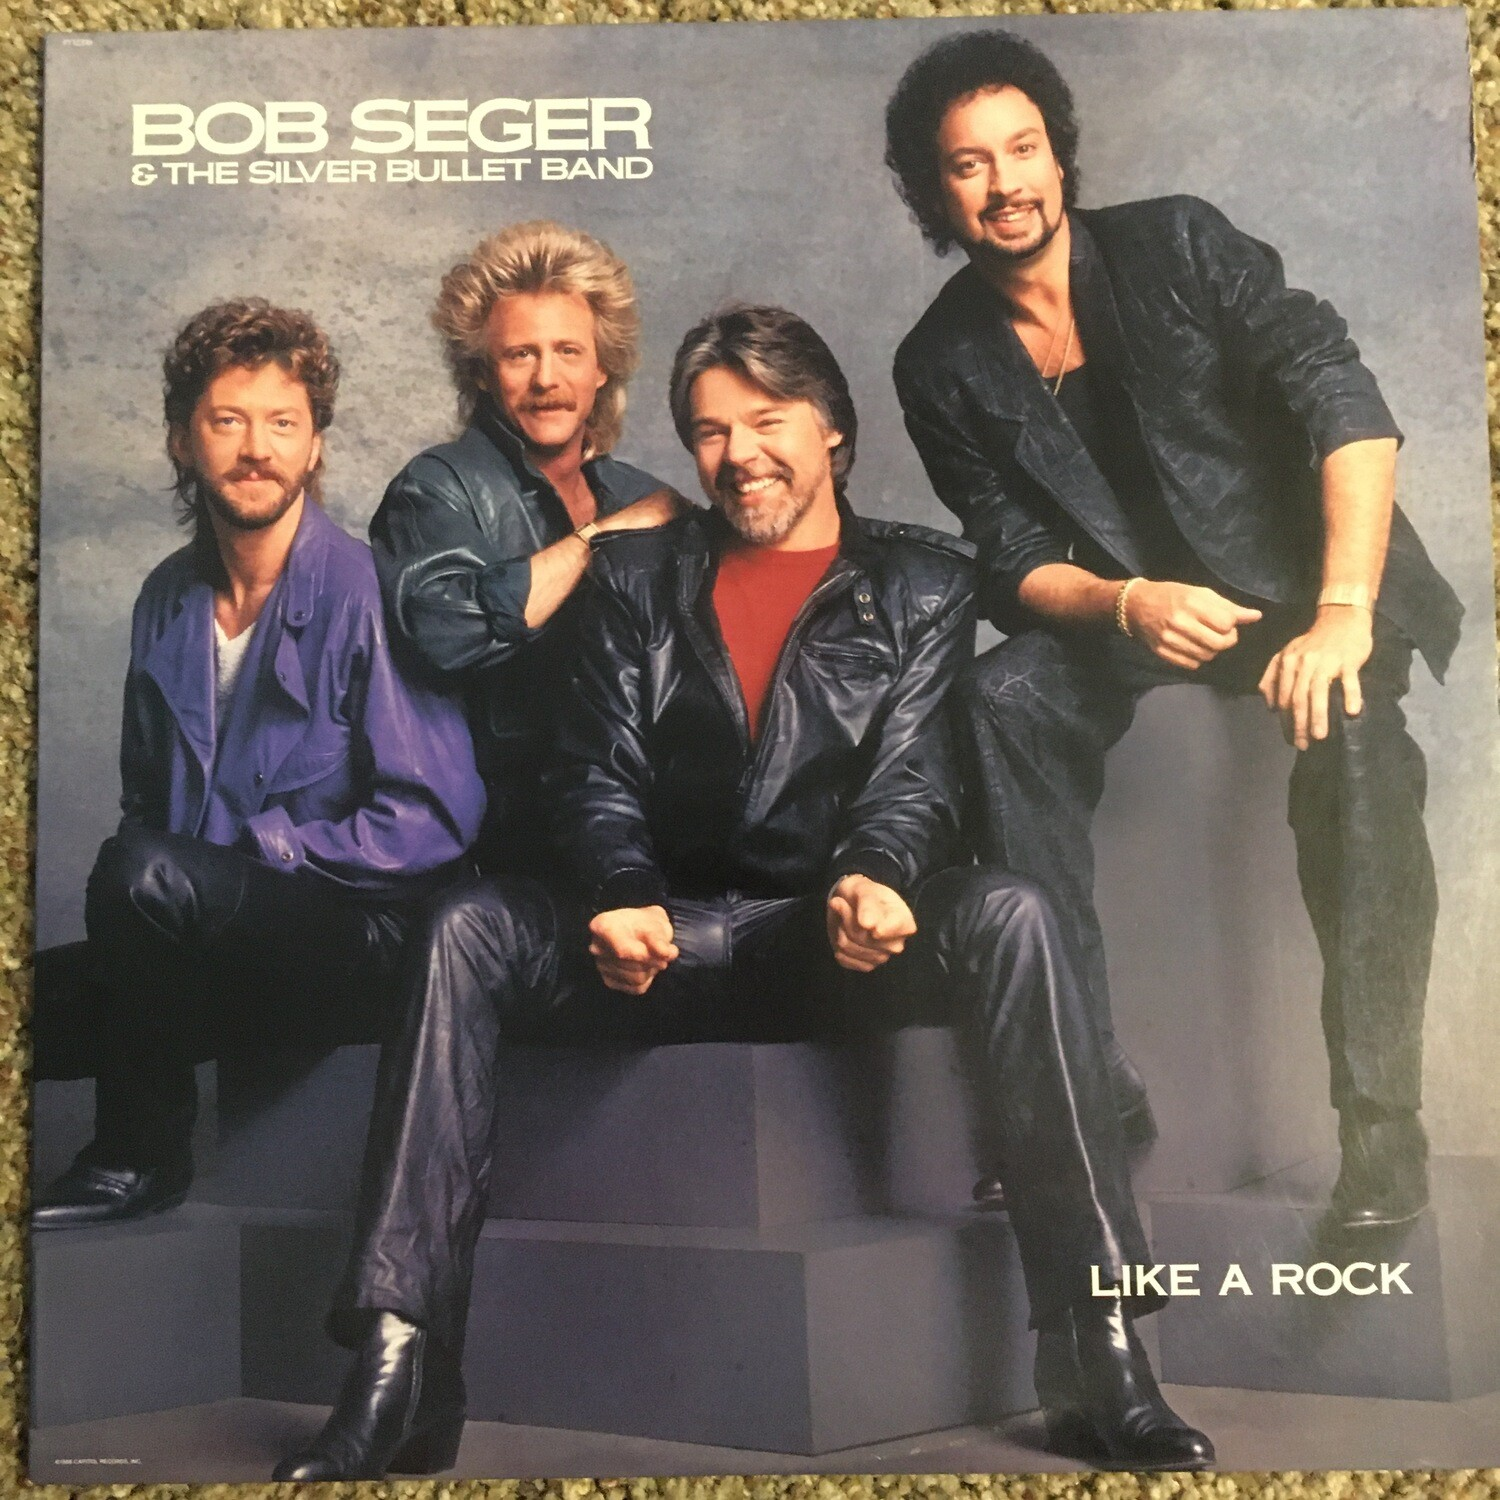 Bob Seger & The Silver Bullet Band ~ Like A Rock ~ Vinyl LP (Original Pressing) (1986) Capitol Records. (USED)